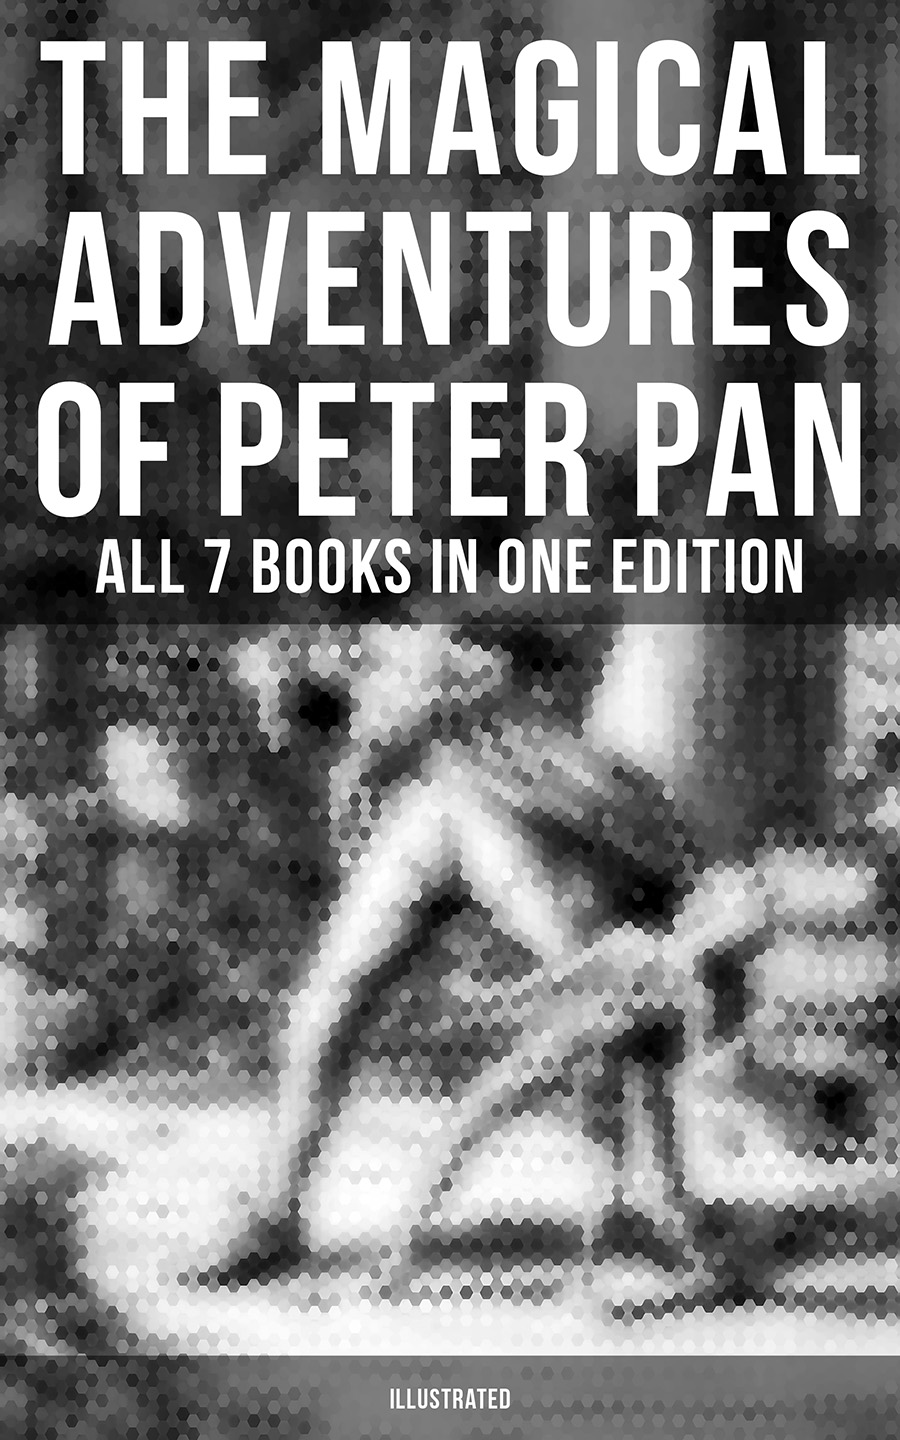 J. M. Barrie The Magical Adventures of Peter Pan - All 7 Books in One Edition (Illustrated) j m molter ouverture in g major mwv 3 2